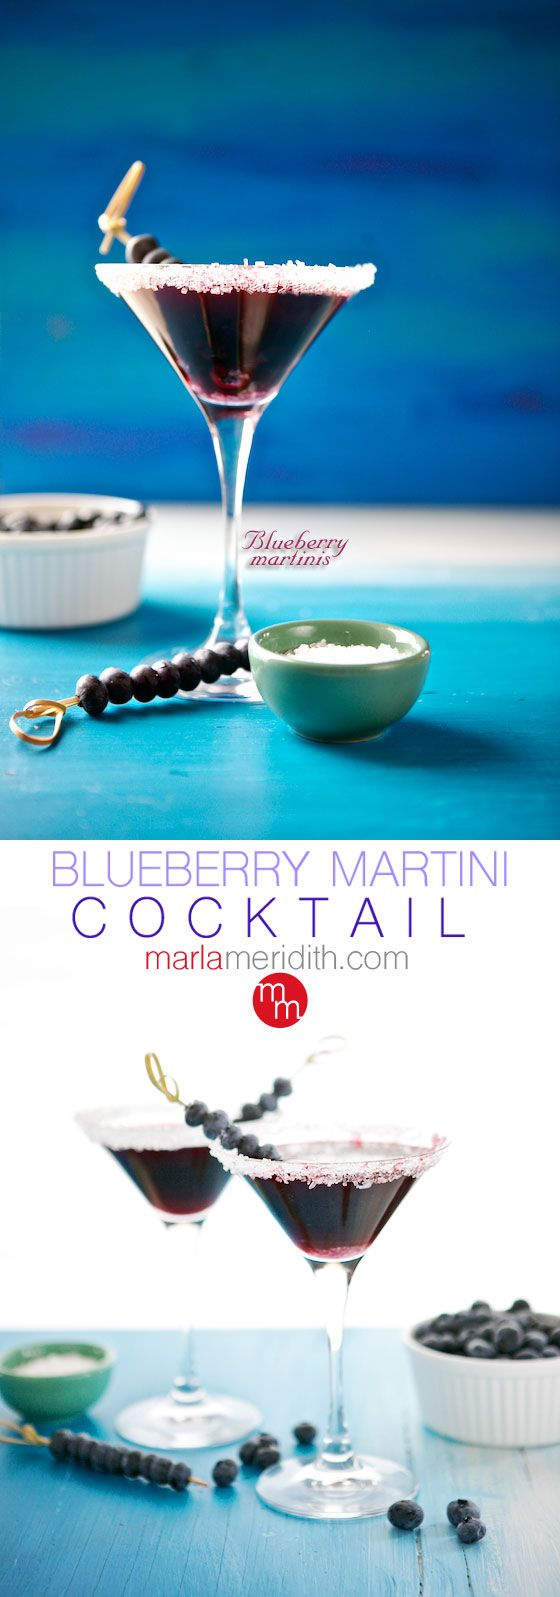 Blueberry Martini Cocktails | MarlaMeridith.com